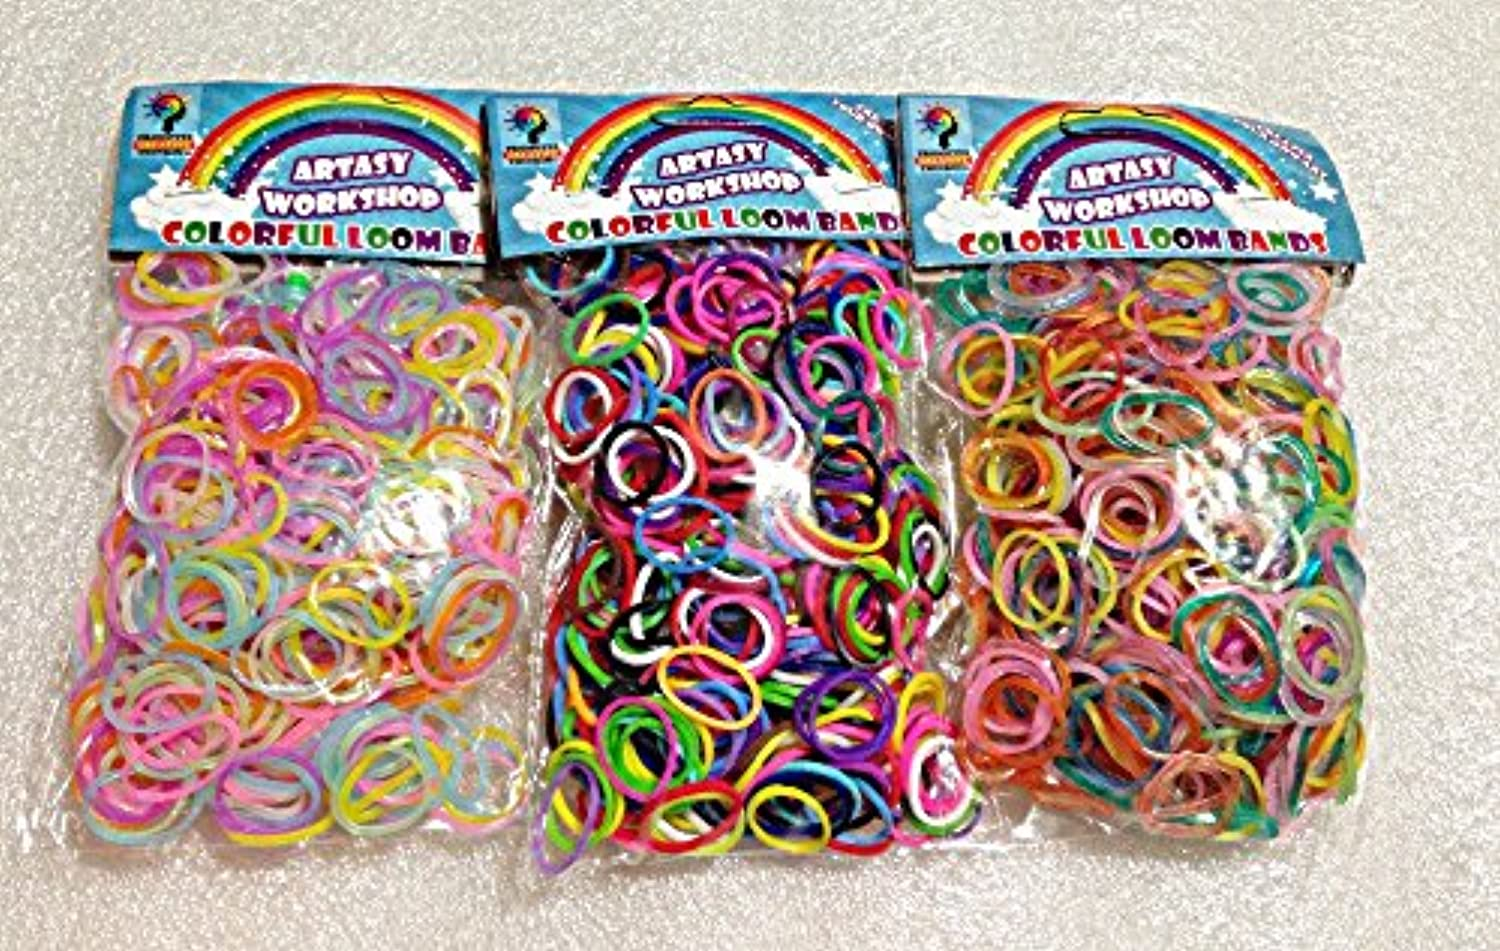 [Artasy Workshop] バンドブレスレット (蛍光&普通&銀ラメ) ミックスゴム3種類セット Loom Bands refill Pack - (1800) rubber ring Color: Rainbow Triple[並行輸入品]